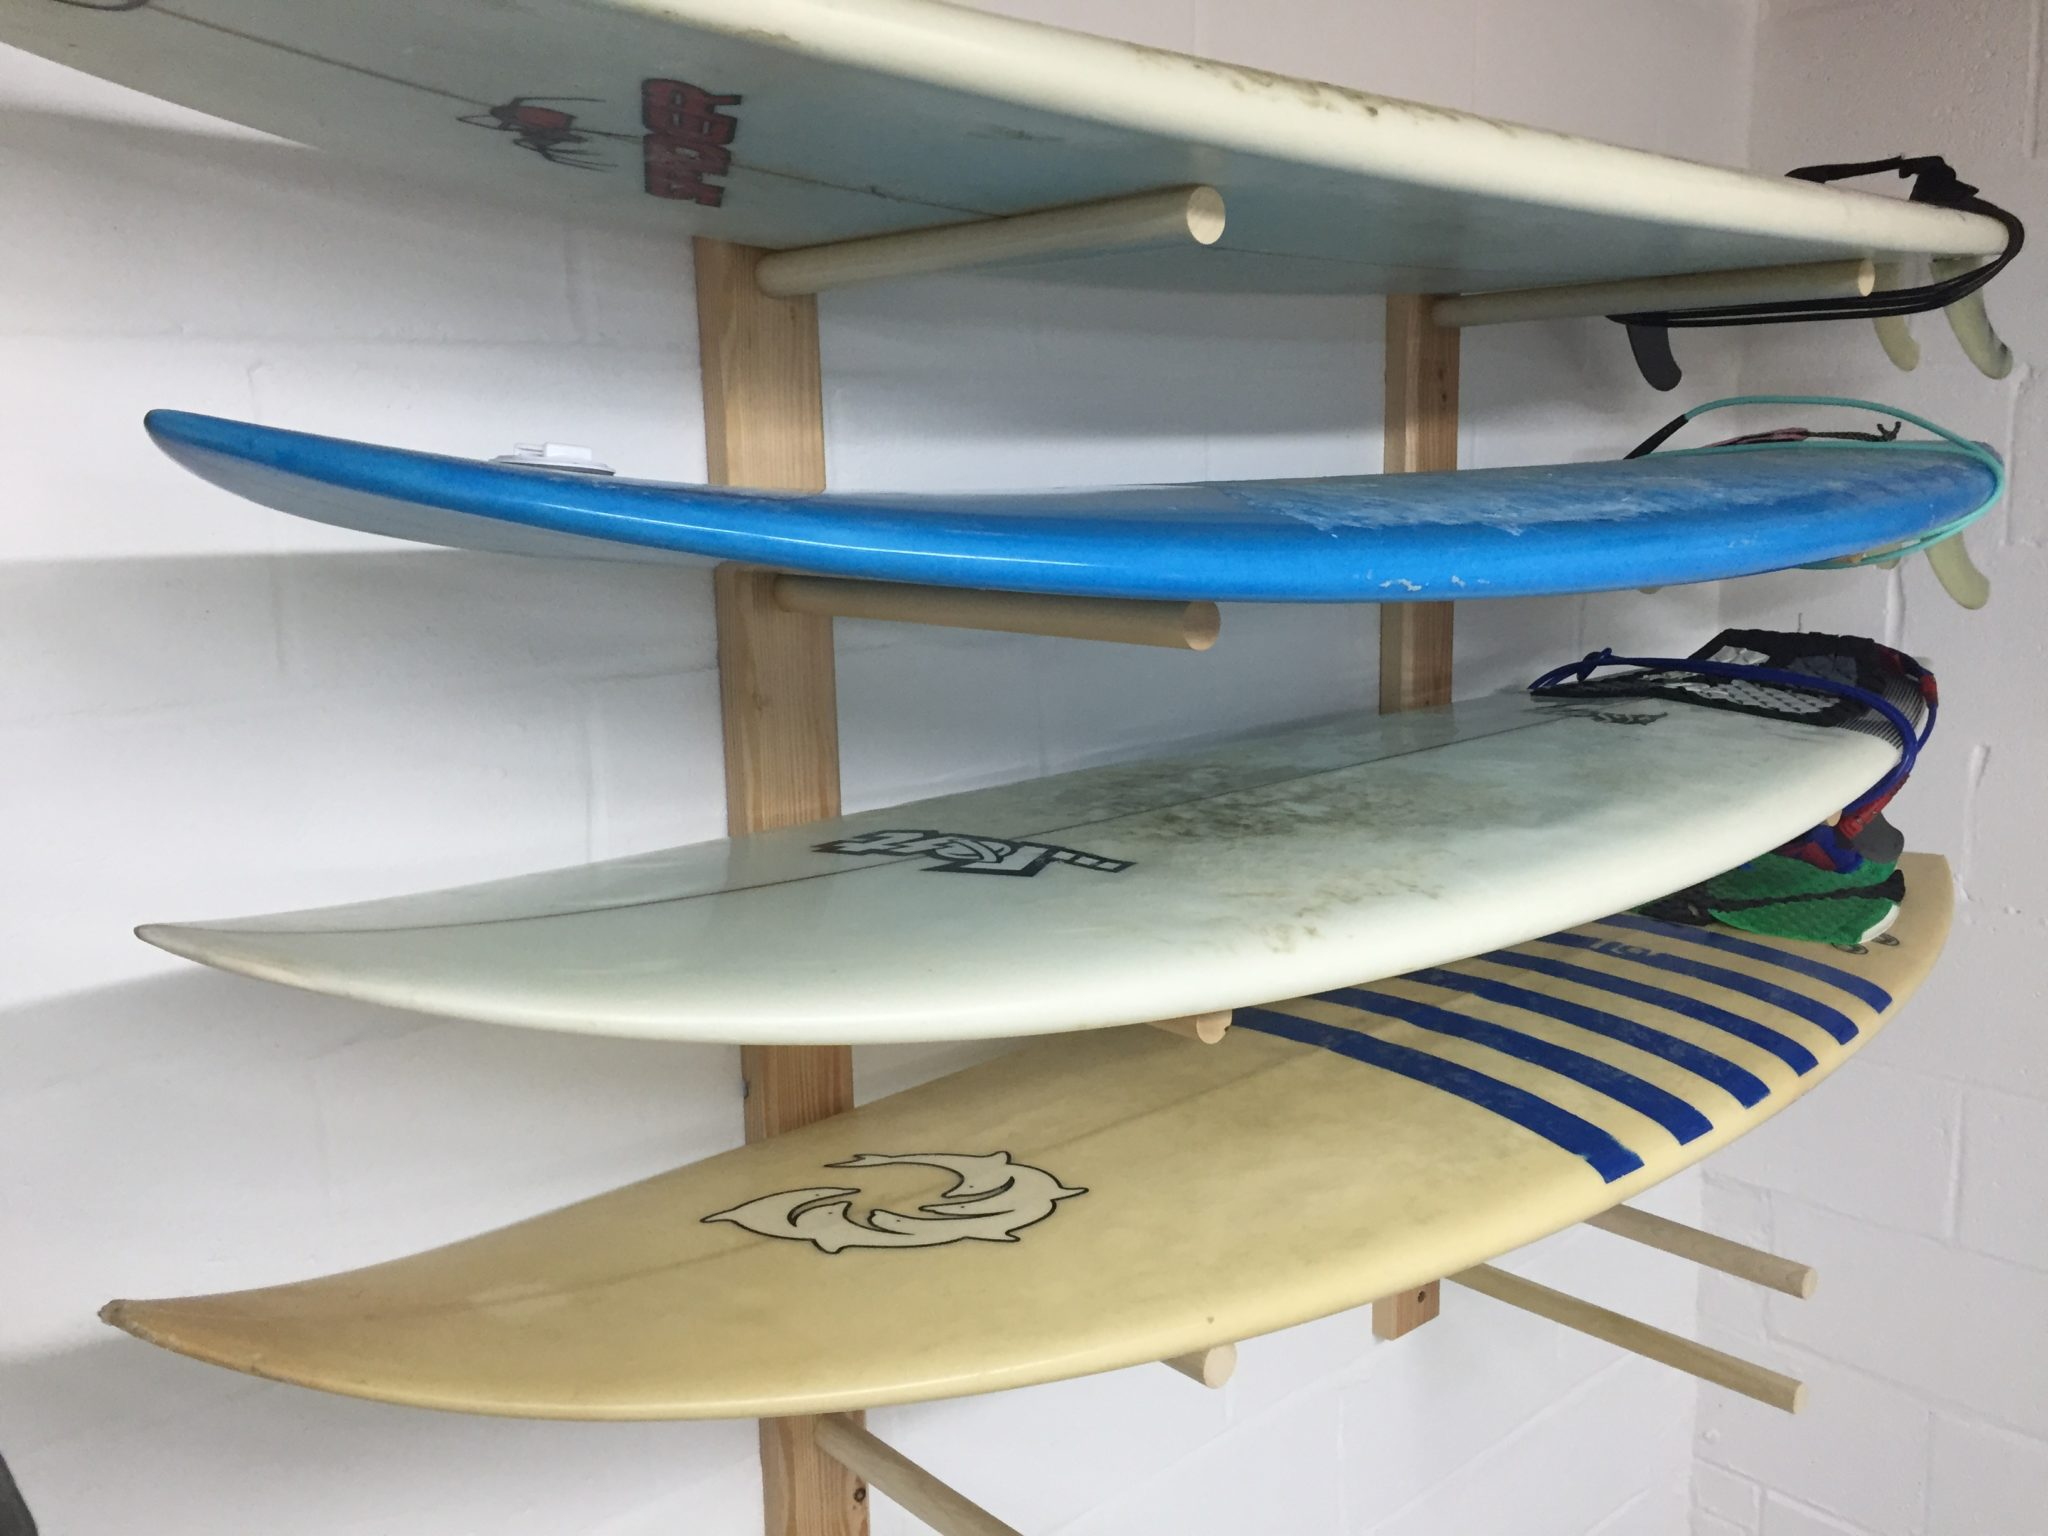 Build a Surfboard Rack – Free Design Plans